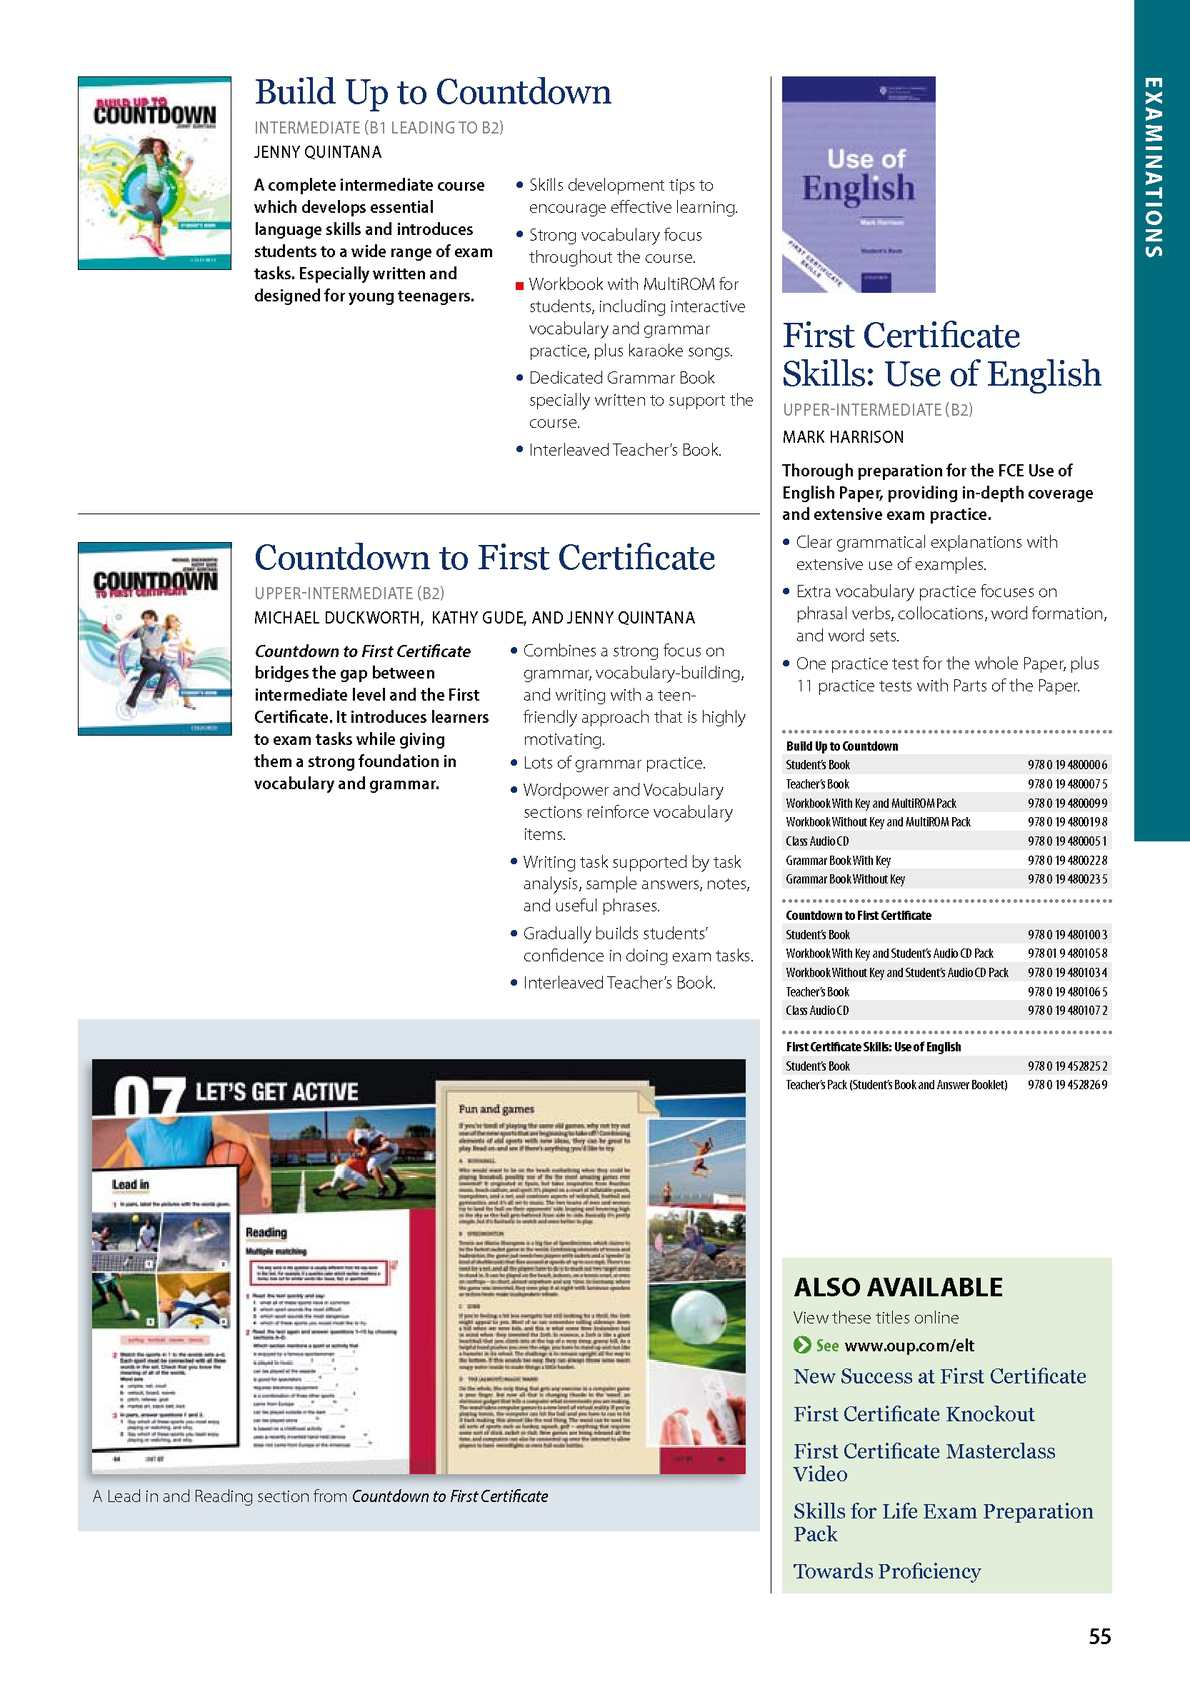 COUNTDOWN TO FIRST CERTIFICATE PDF